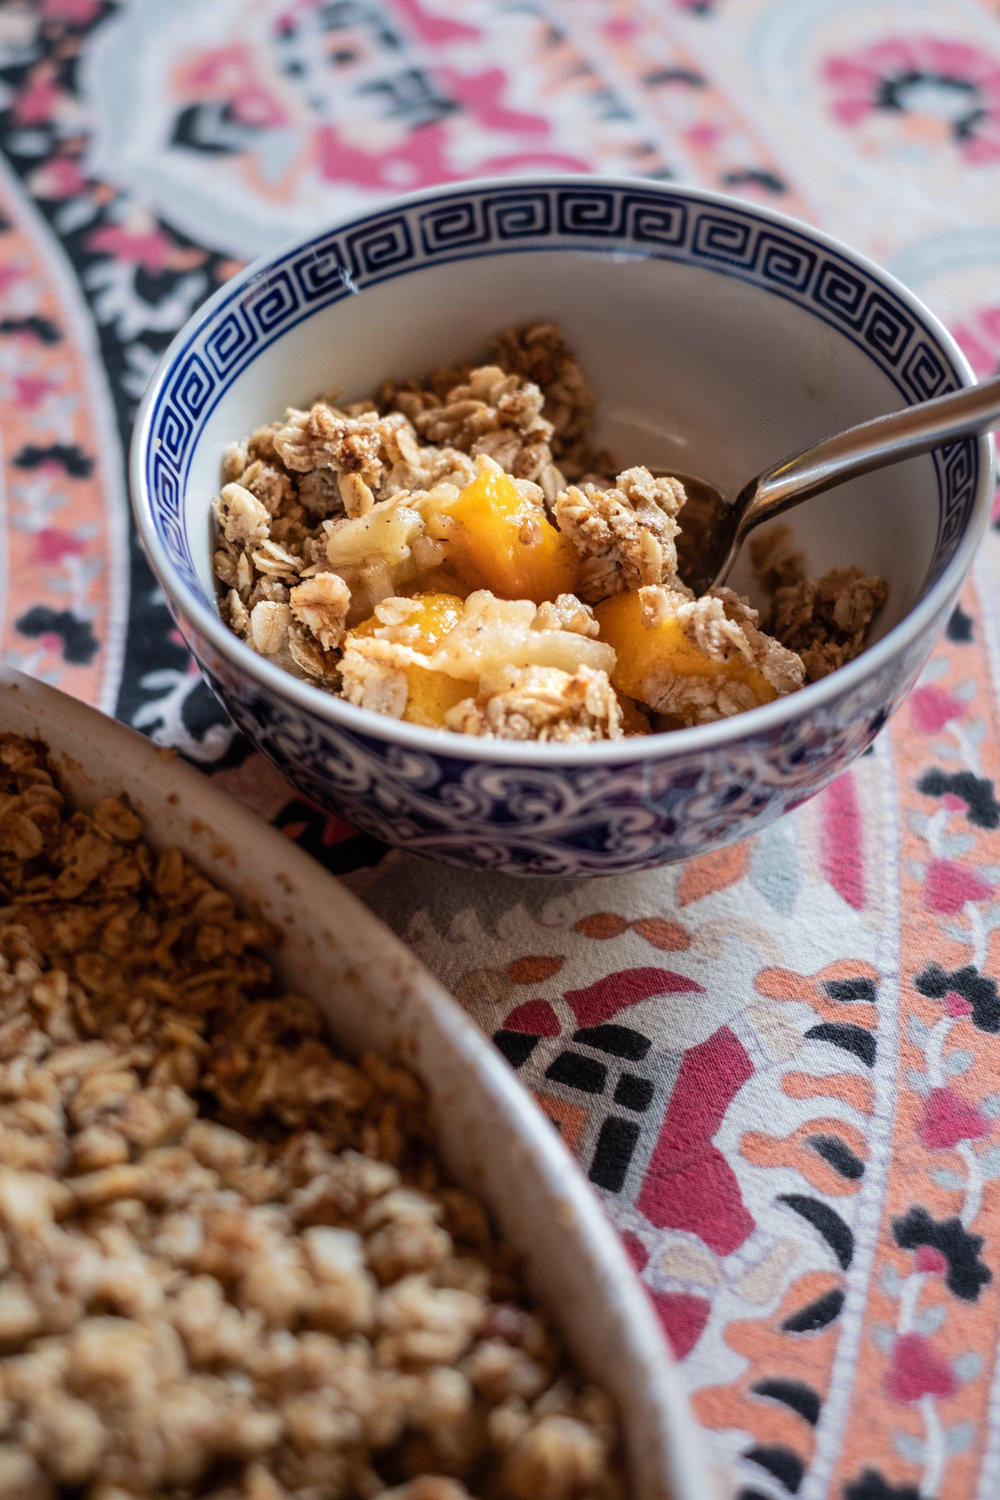 peach-apple crumble, vegan and gluten-free